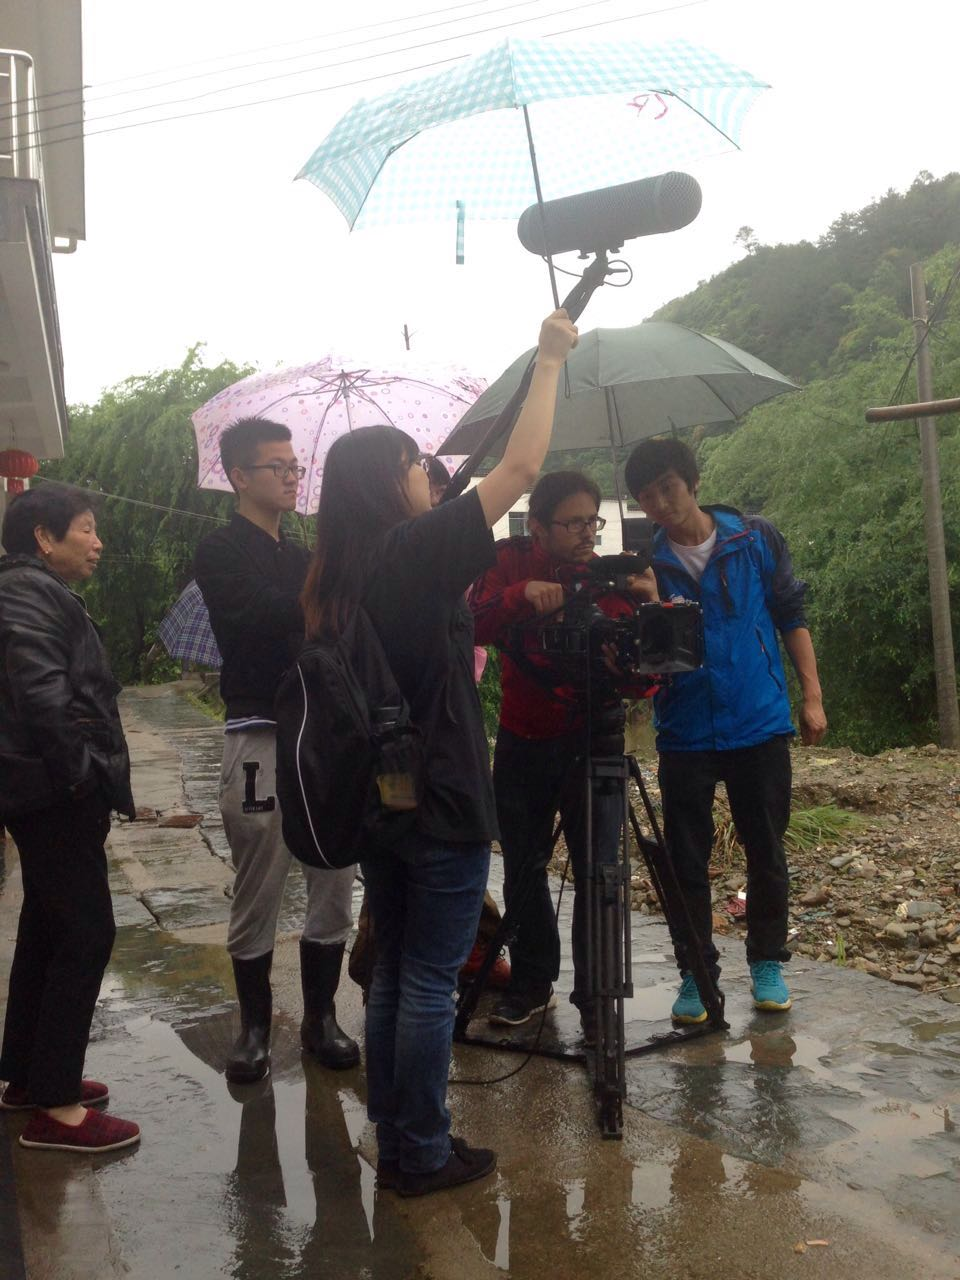 Rainy days in Shang Xiao Qi.